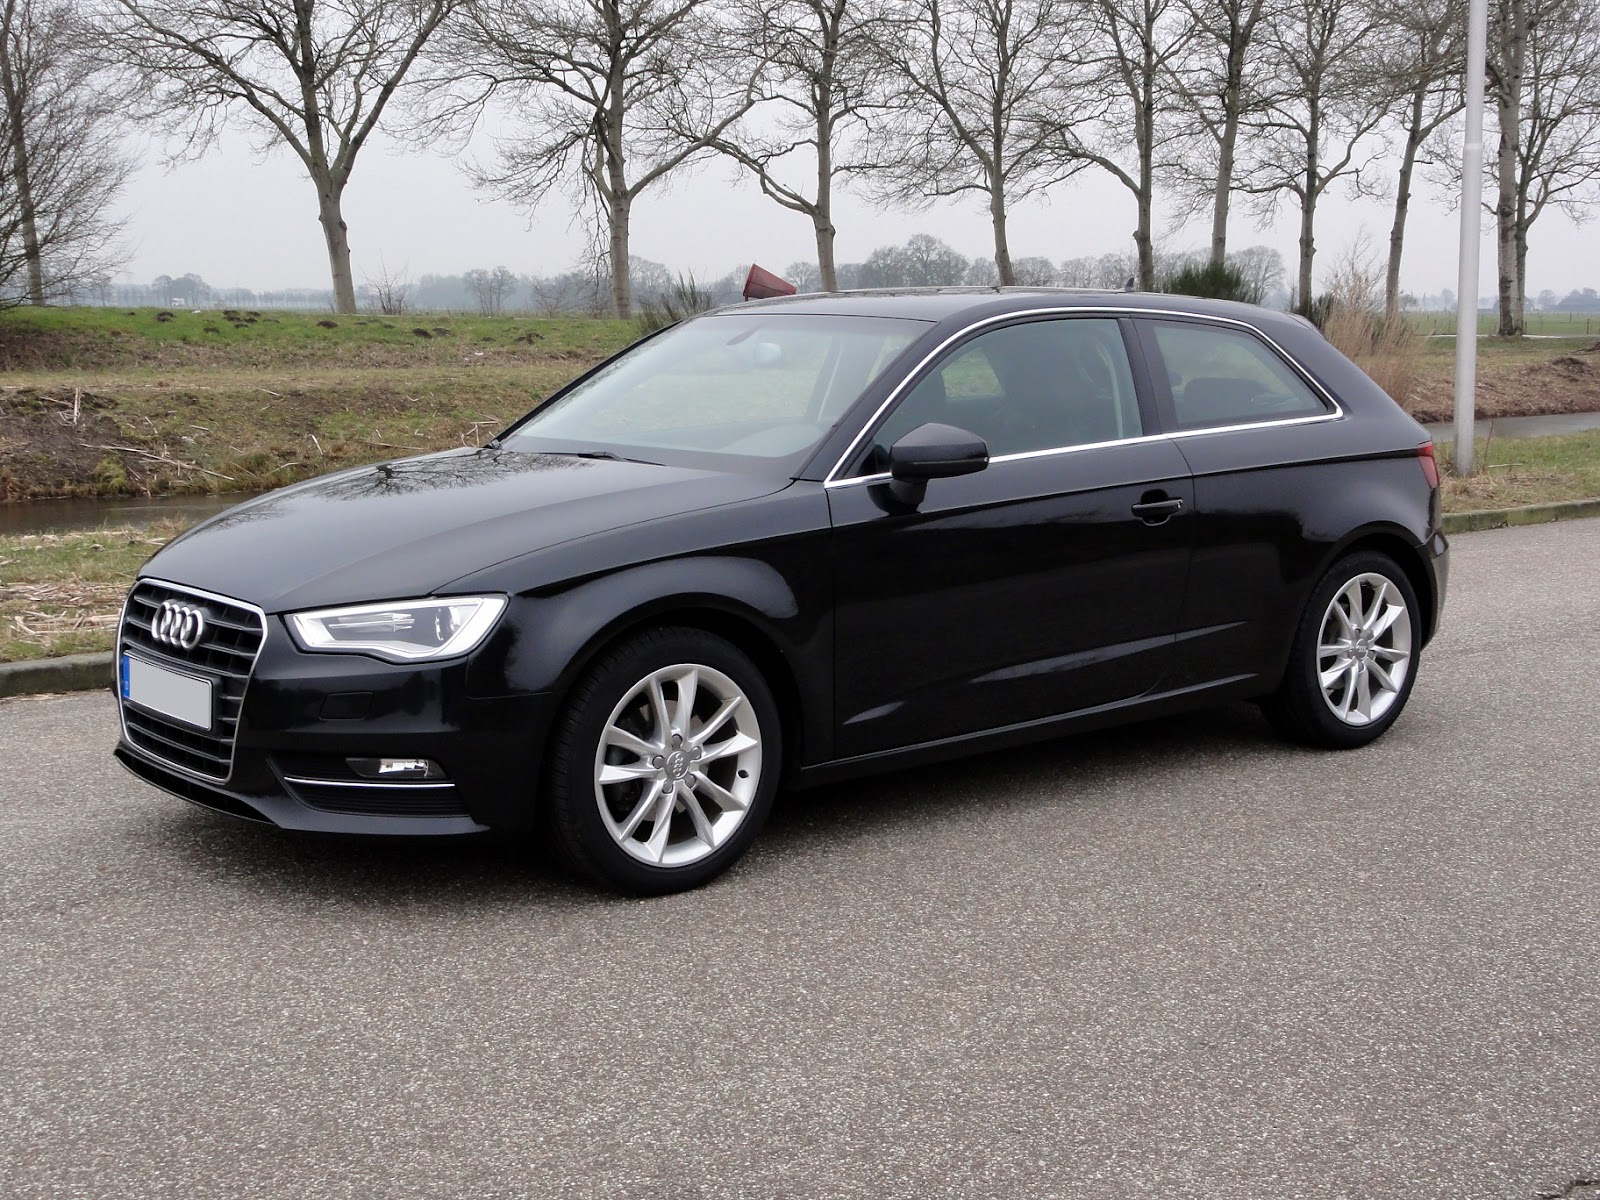 guitigefilmpjes picture update audi a3 2 0 tdi ambition 2013 8v. Black Bedroom Furniture Sets. Home Design Ideas